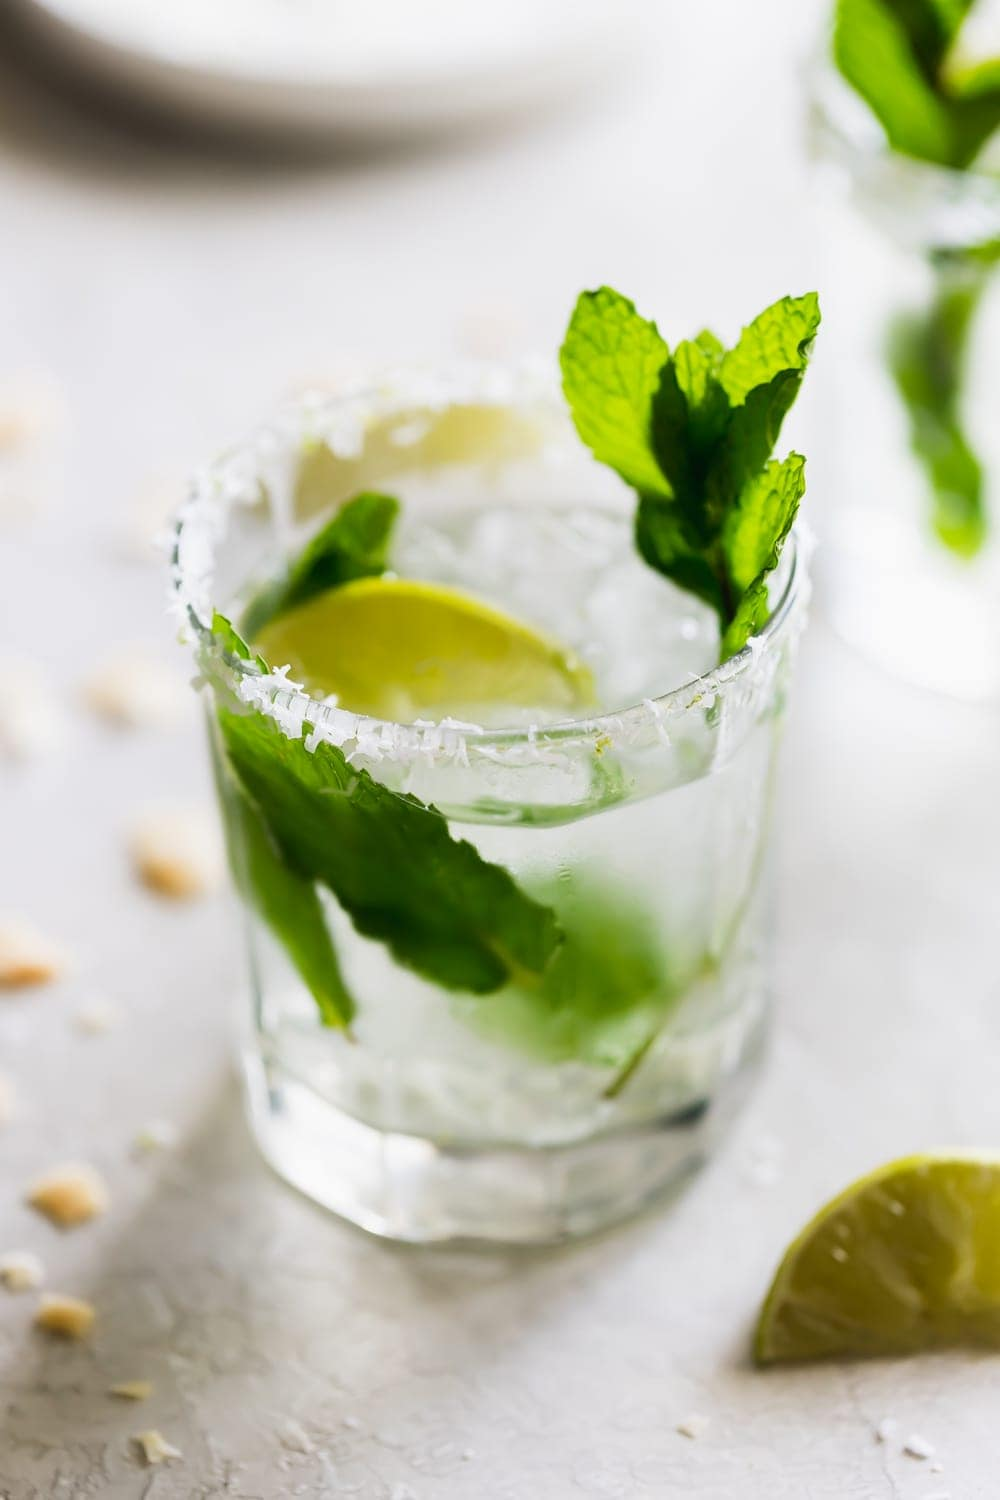 glass of coconut mojito drink with mint leaves and lime wedges